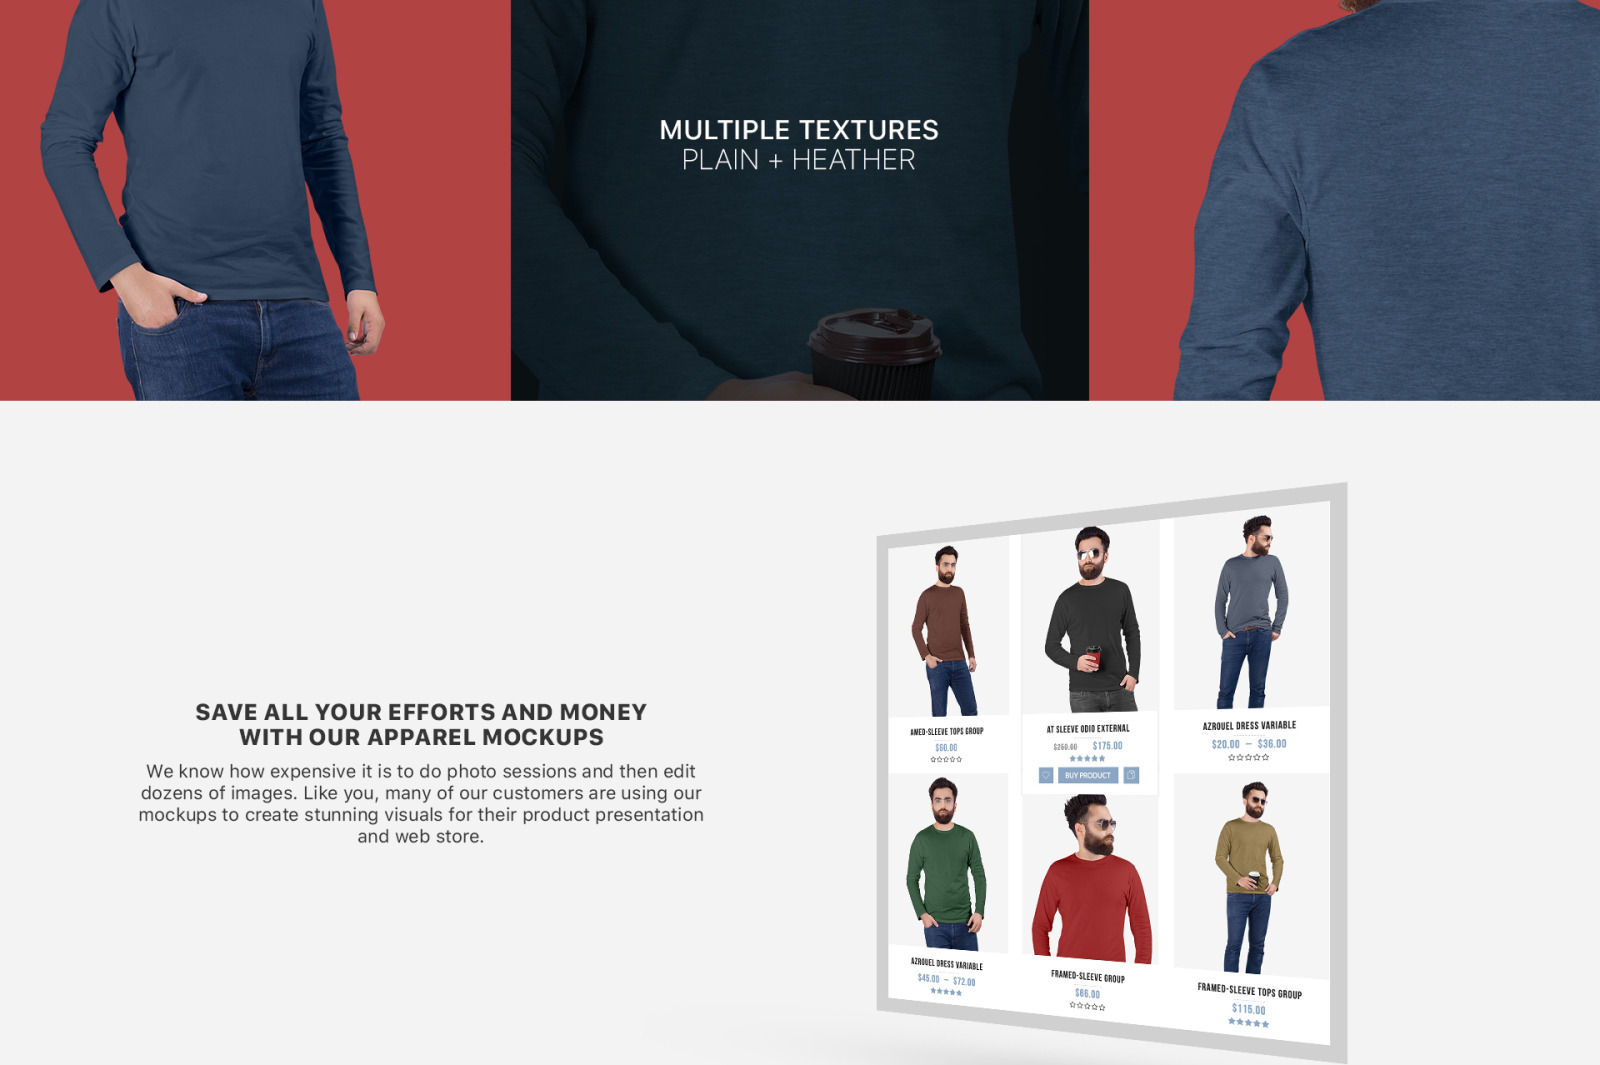 Men S Crew Neck Shirt Mockup Set In Apparel Mockups On Yellow